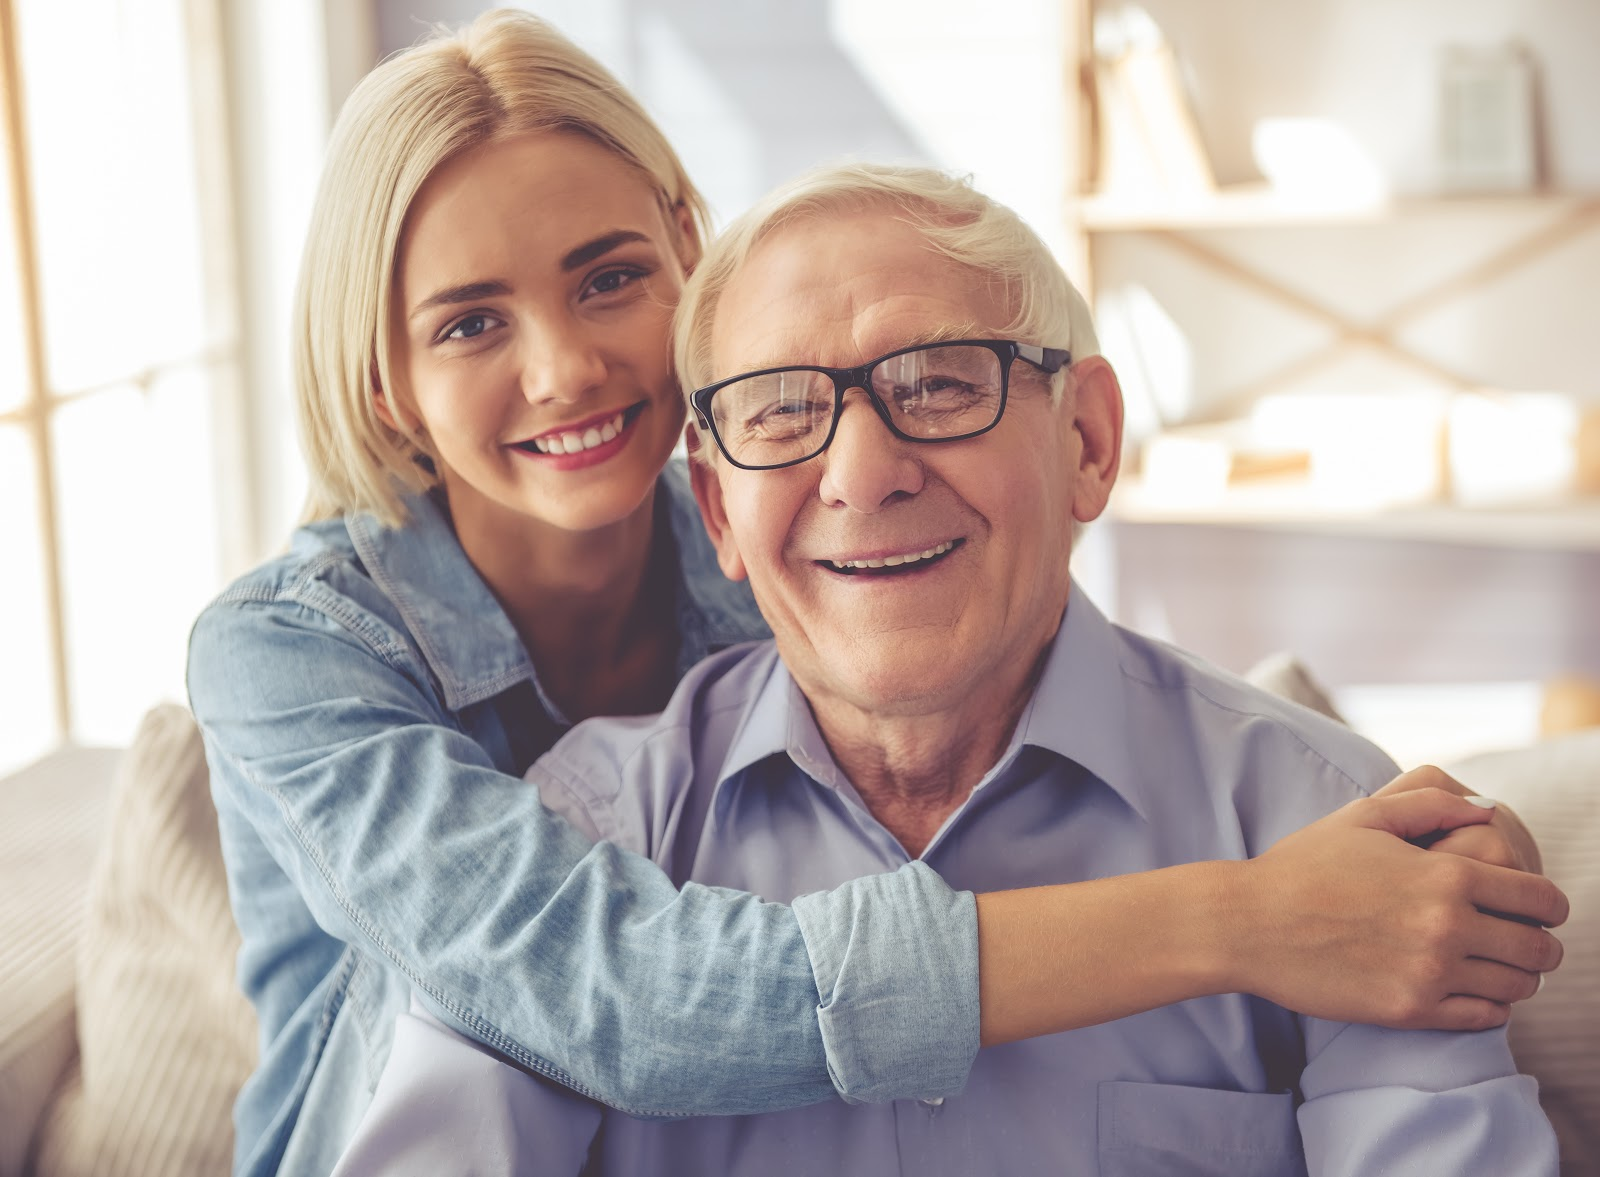 Signs of prostate cancer: Woman hugging her father and smiling